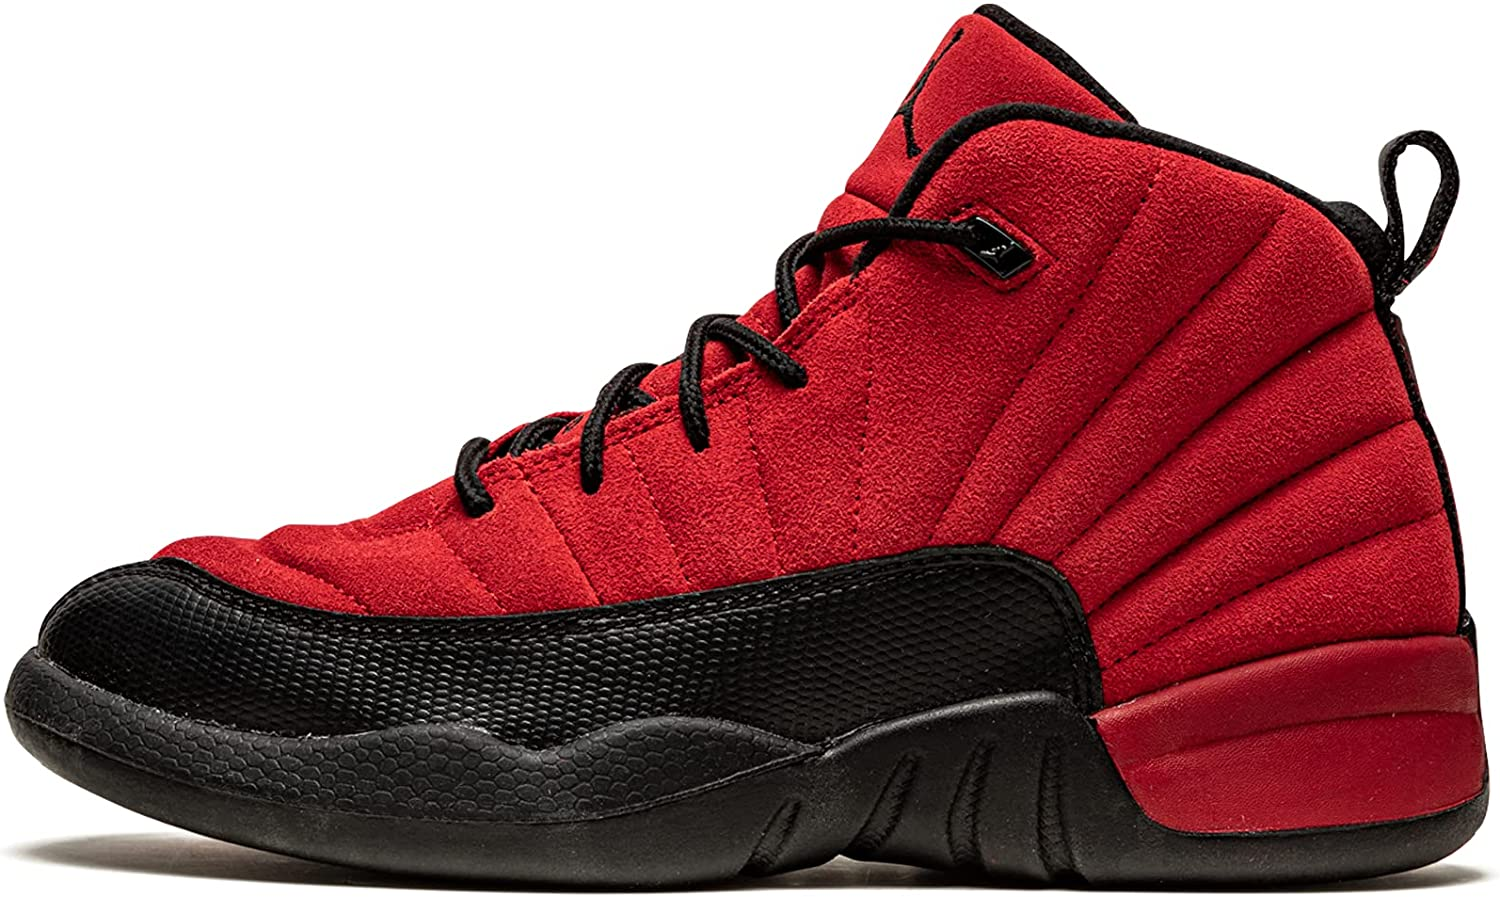 Jordan Kid's Shoes Nike All stores are sold Air 12 Flu Retro 15118 Year-end gift PS Reverse Game